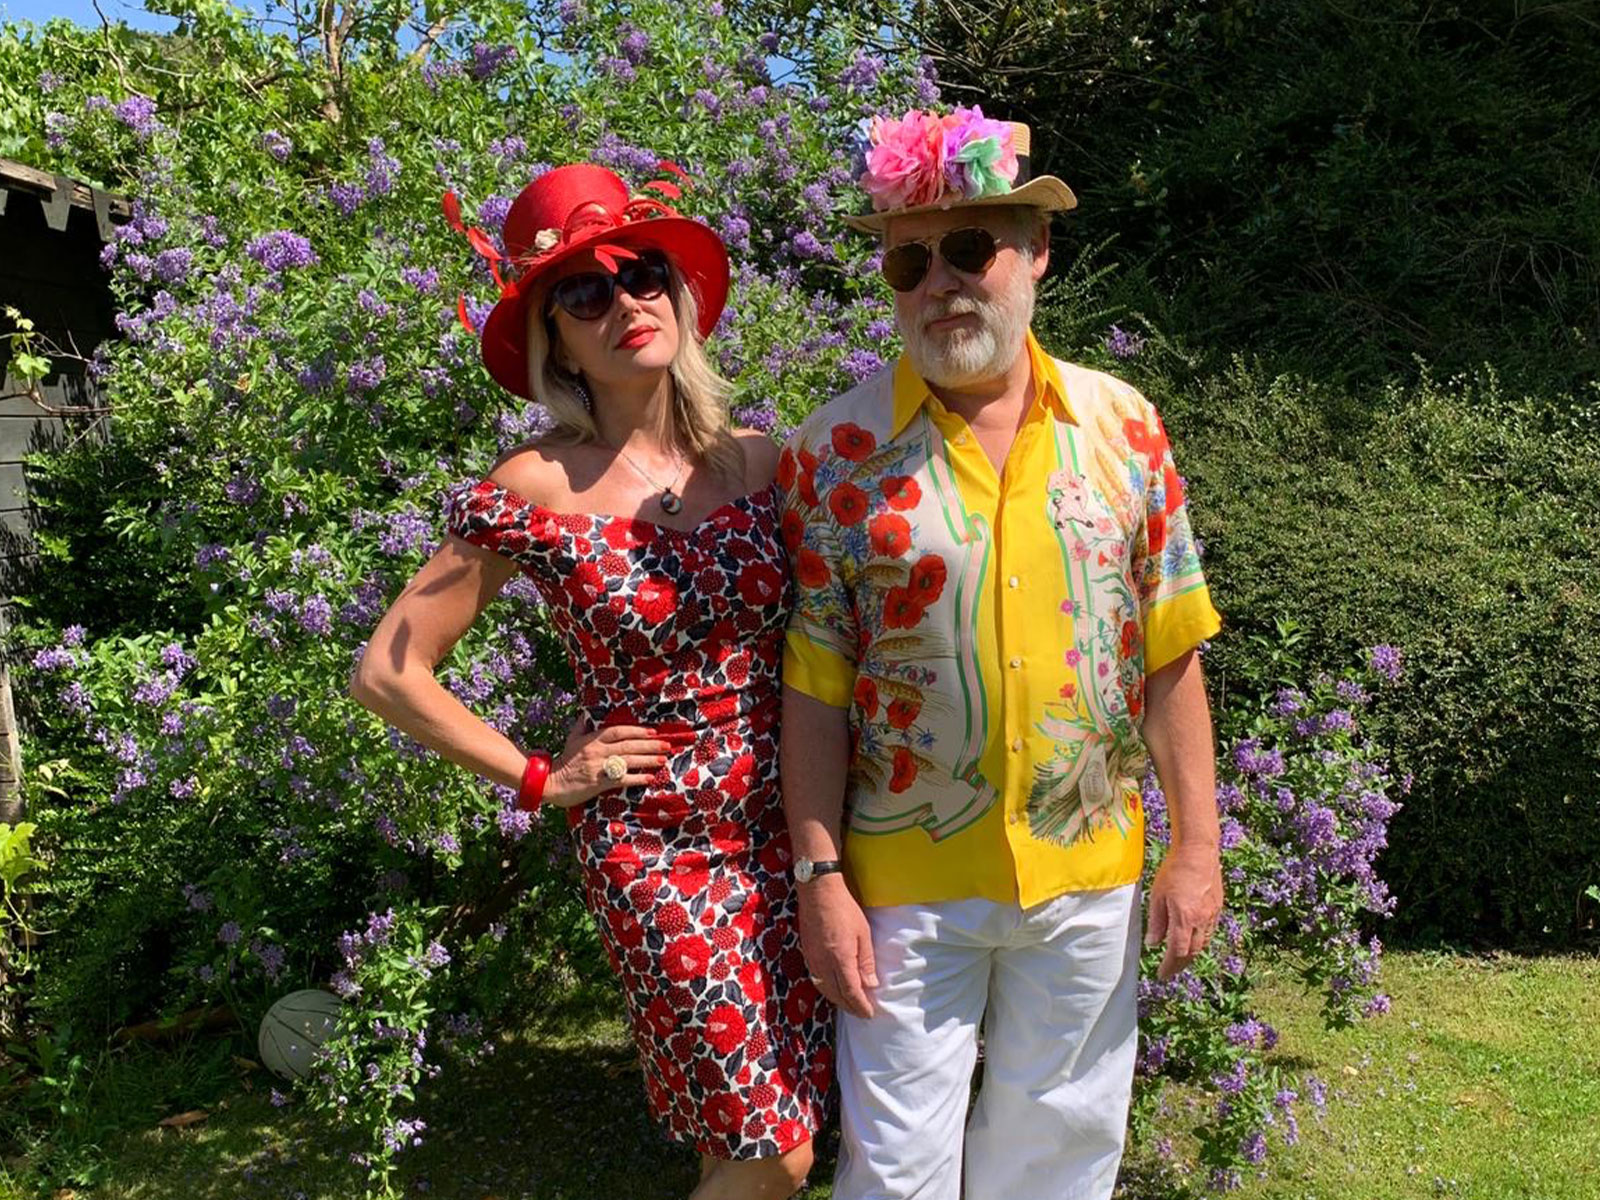 James Moir  Nancy Sorrell supporting #WearAHatDayWithFlowers